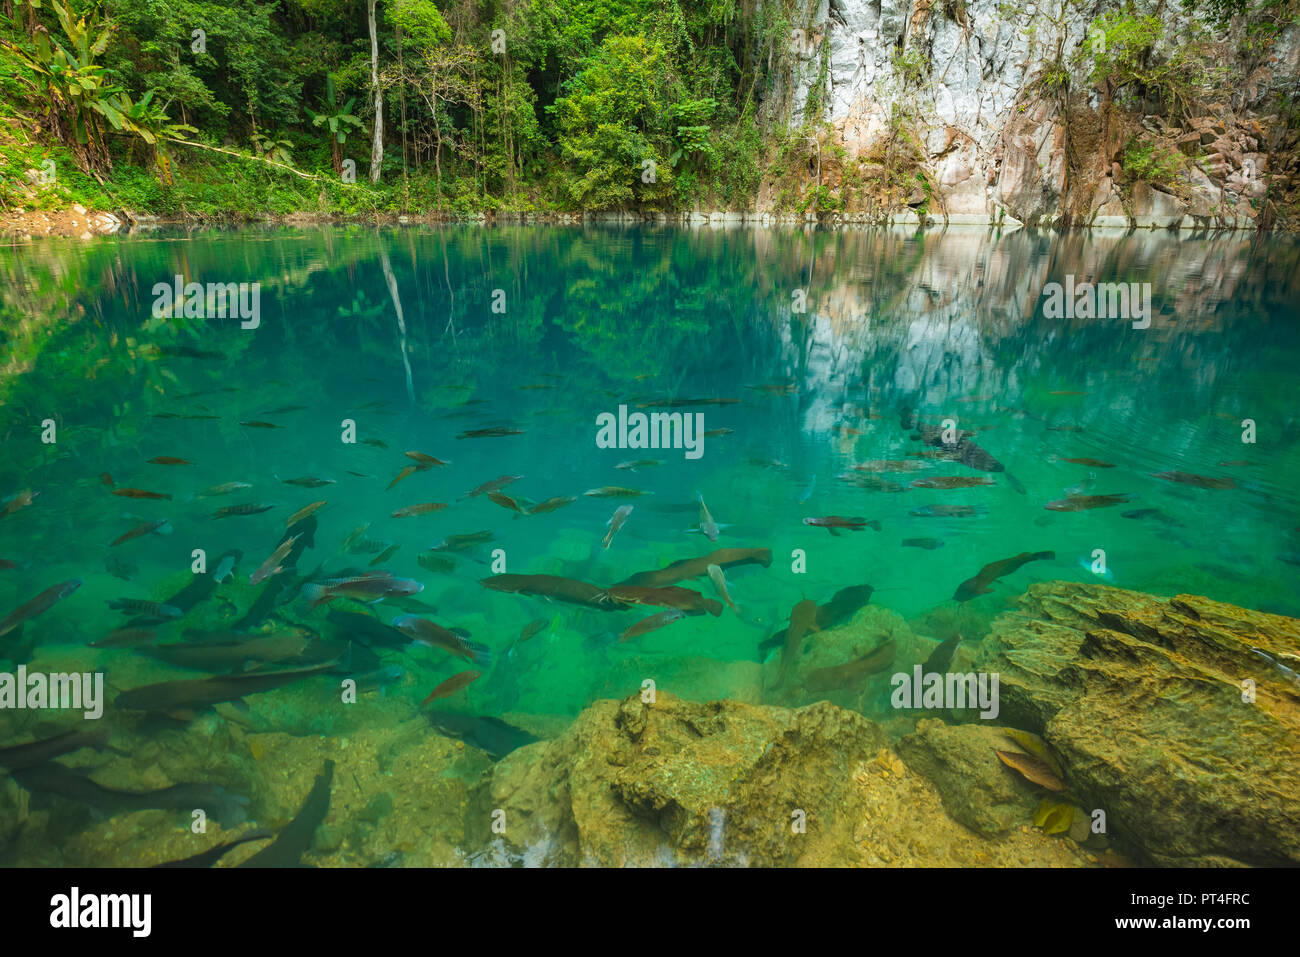 Lom Phu Kiew pond with crystal clear water and a group of fish a famous tourist attraction of Lampang province, Thailand - Stock Image